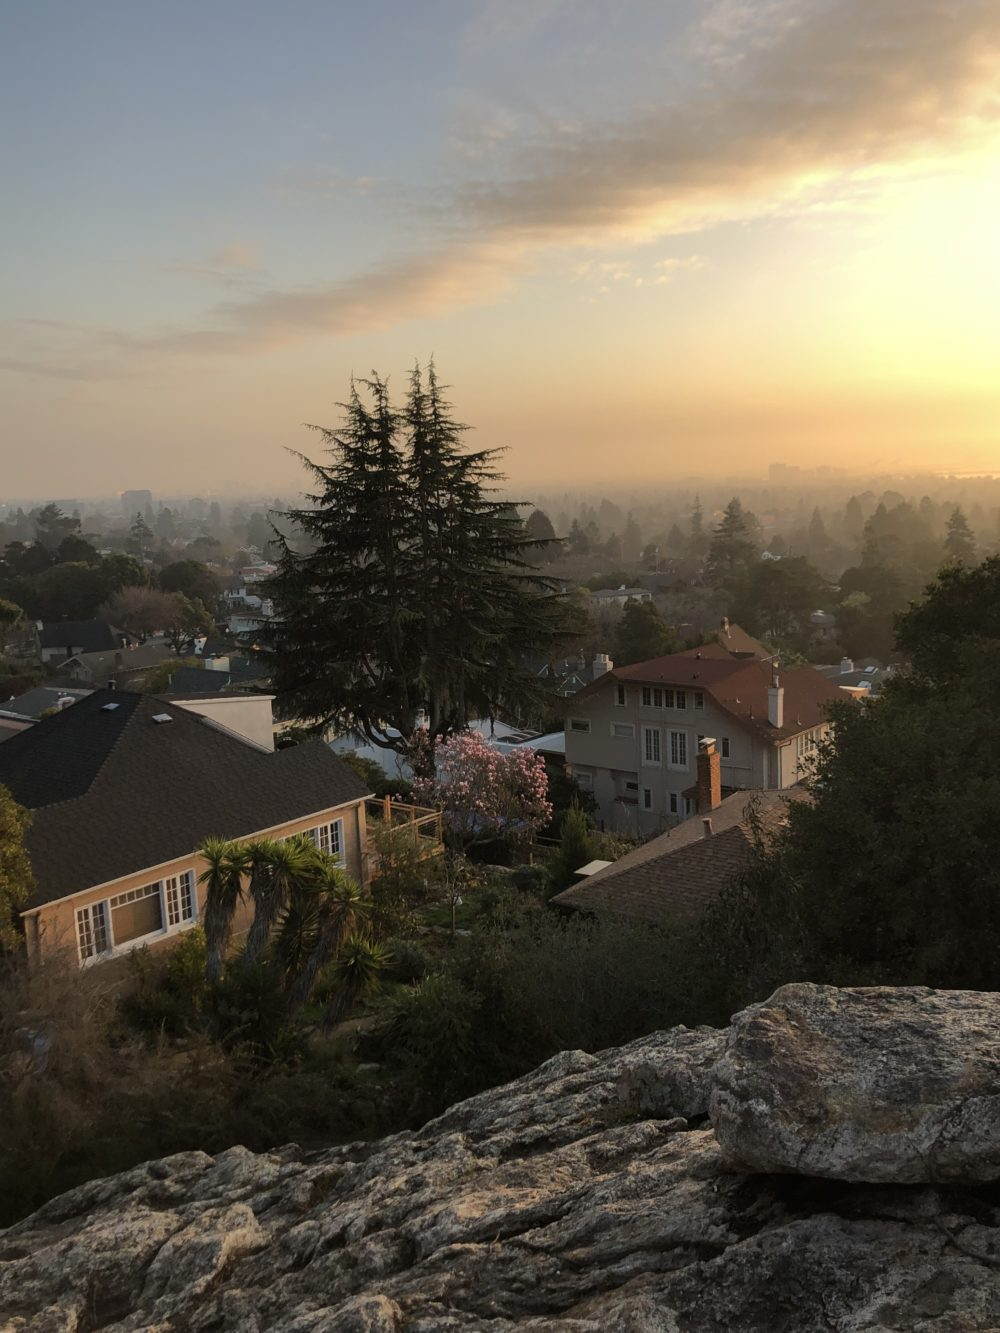 park 2 (rocky cliff, with houses, trees and fog in the distance, and the sun setting)